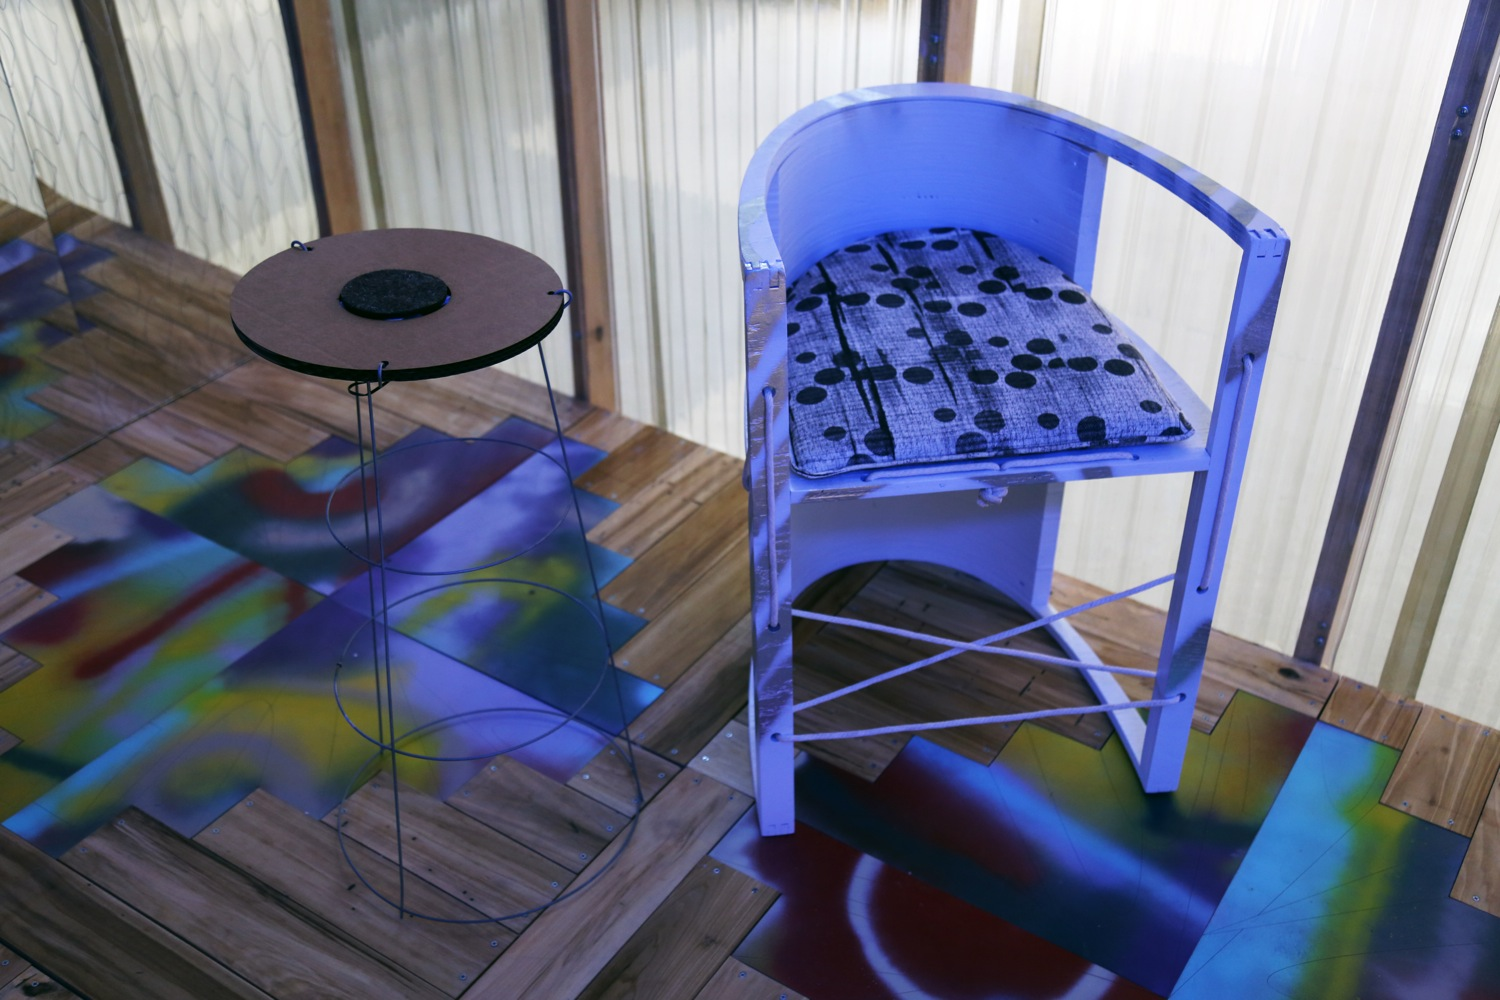 The Chair and The Table